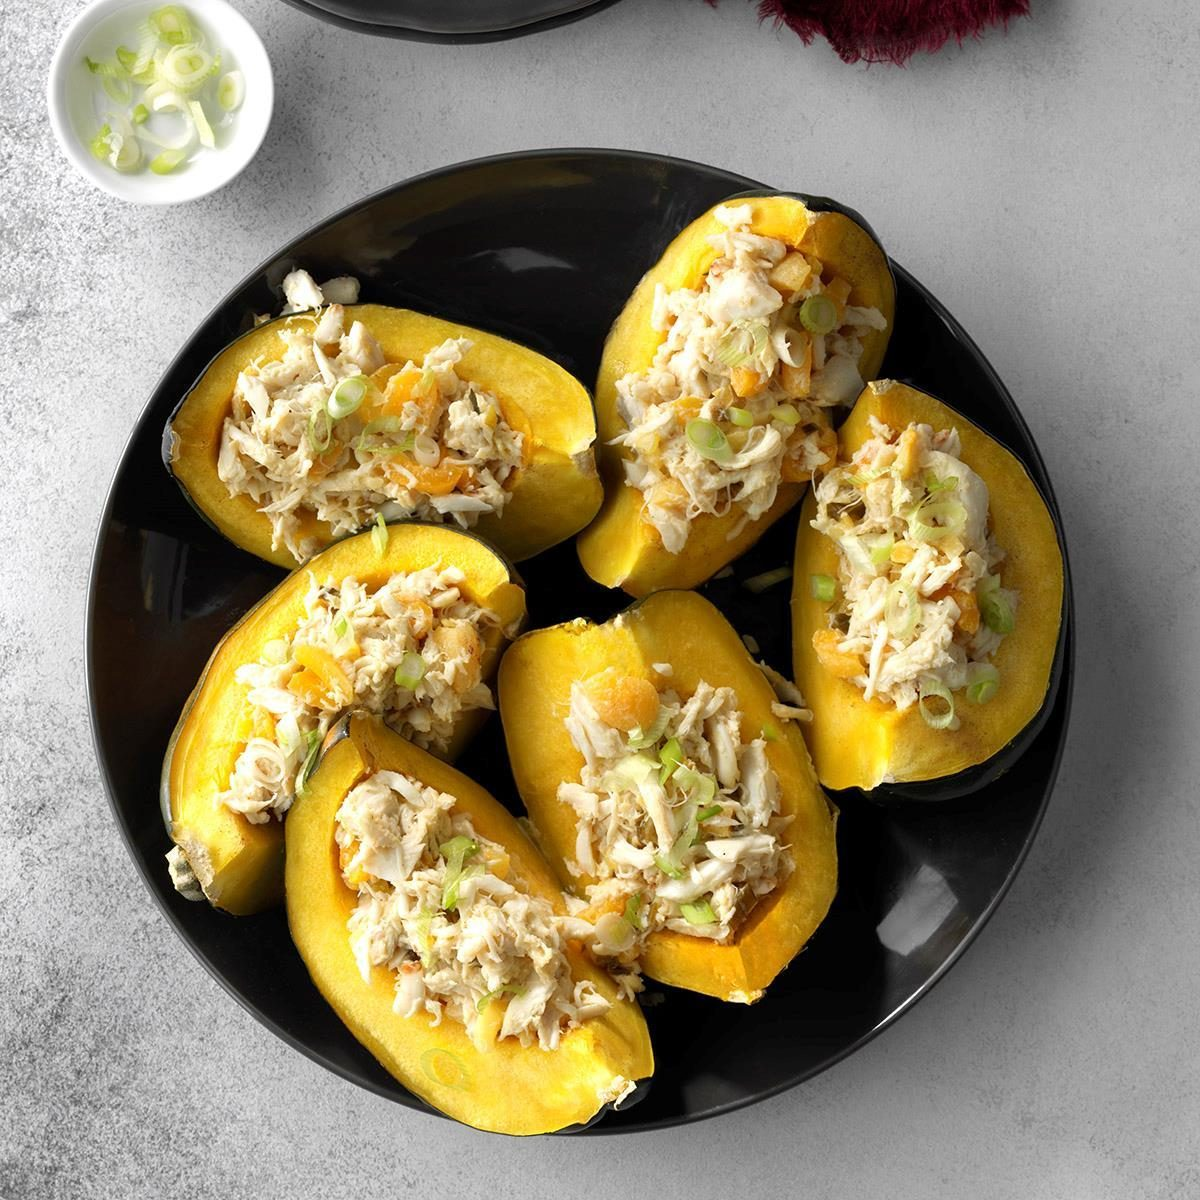 Day 21: Apricot Crab Stuffed Acorn Squash